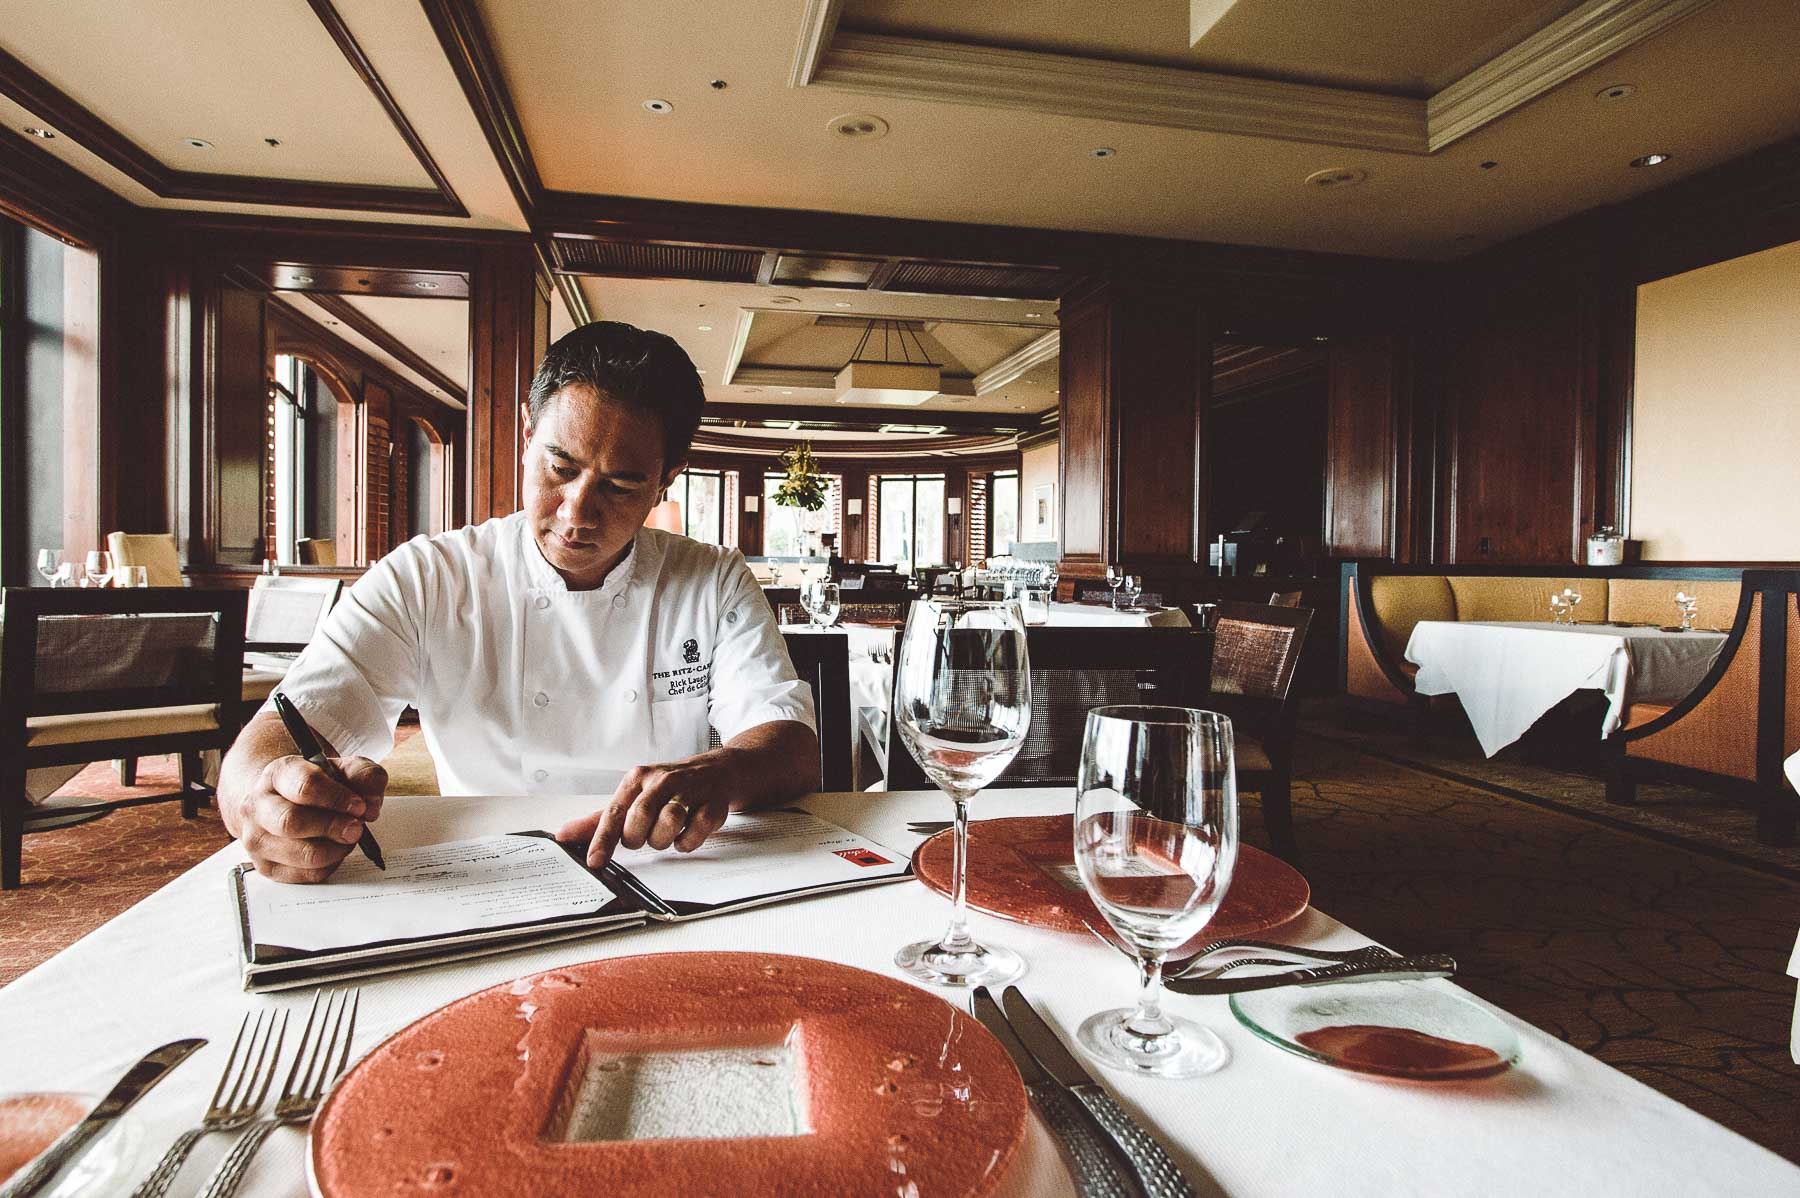 Chef Rick Laughlin prepares the evening's menu at Salt the Ritz-Carlton, Amelia Island, Florida.